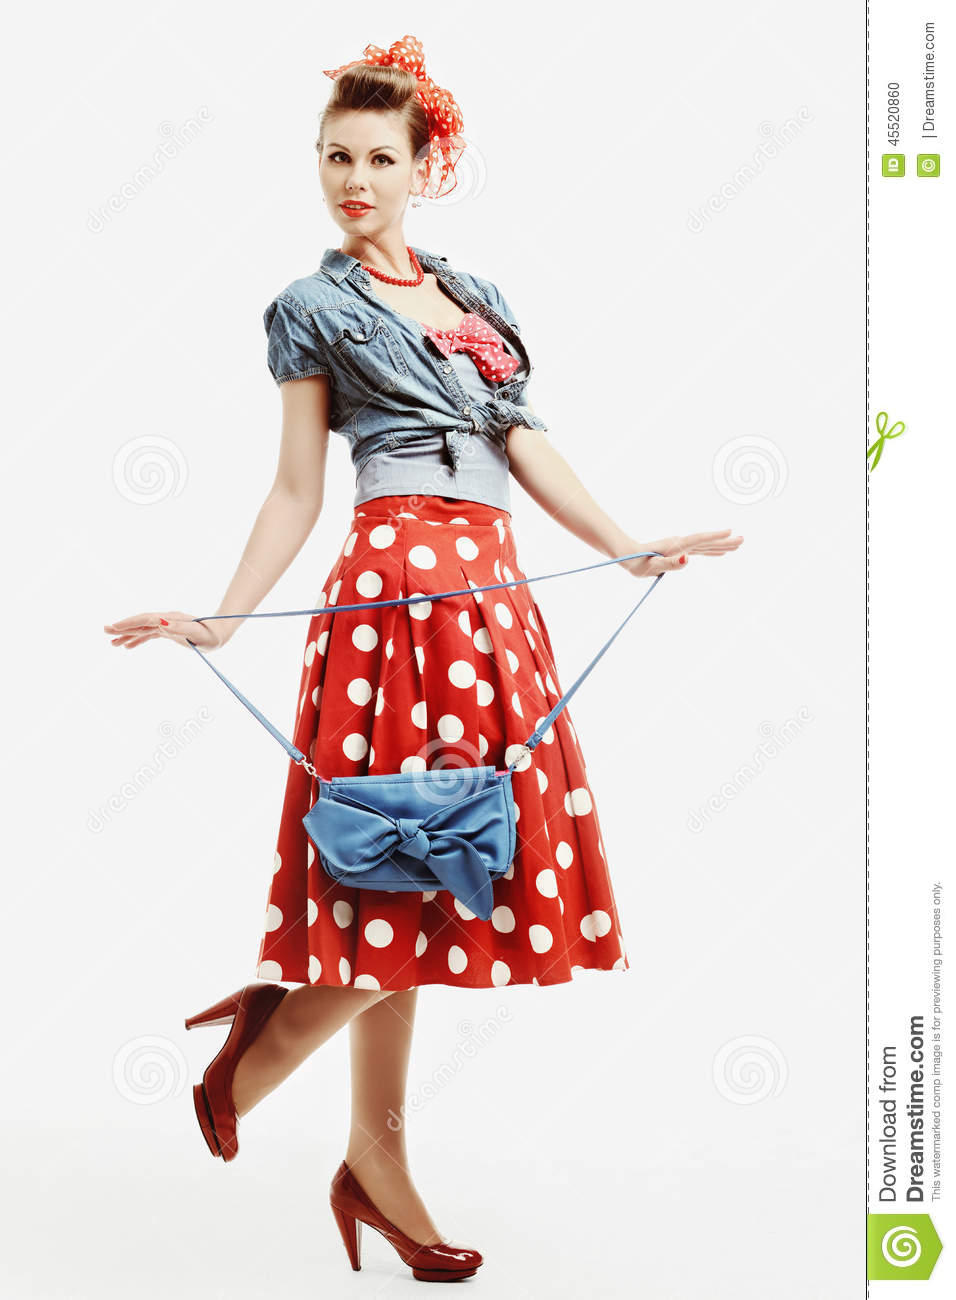 Was Ist Retro Style : pin up young woman in vintage american style with a clutch stock photo image of lipstick ~ Markanthonyermac.com Haus und Dekorationen